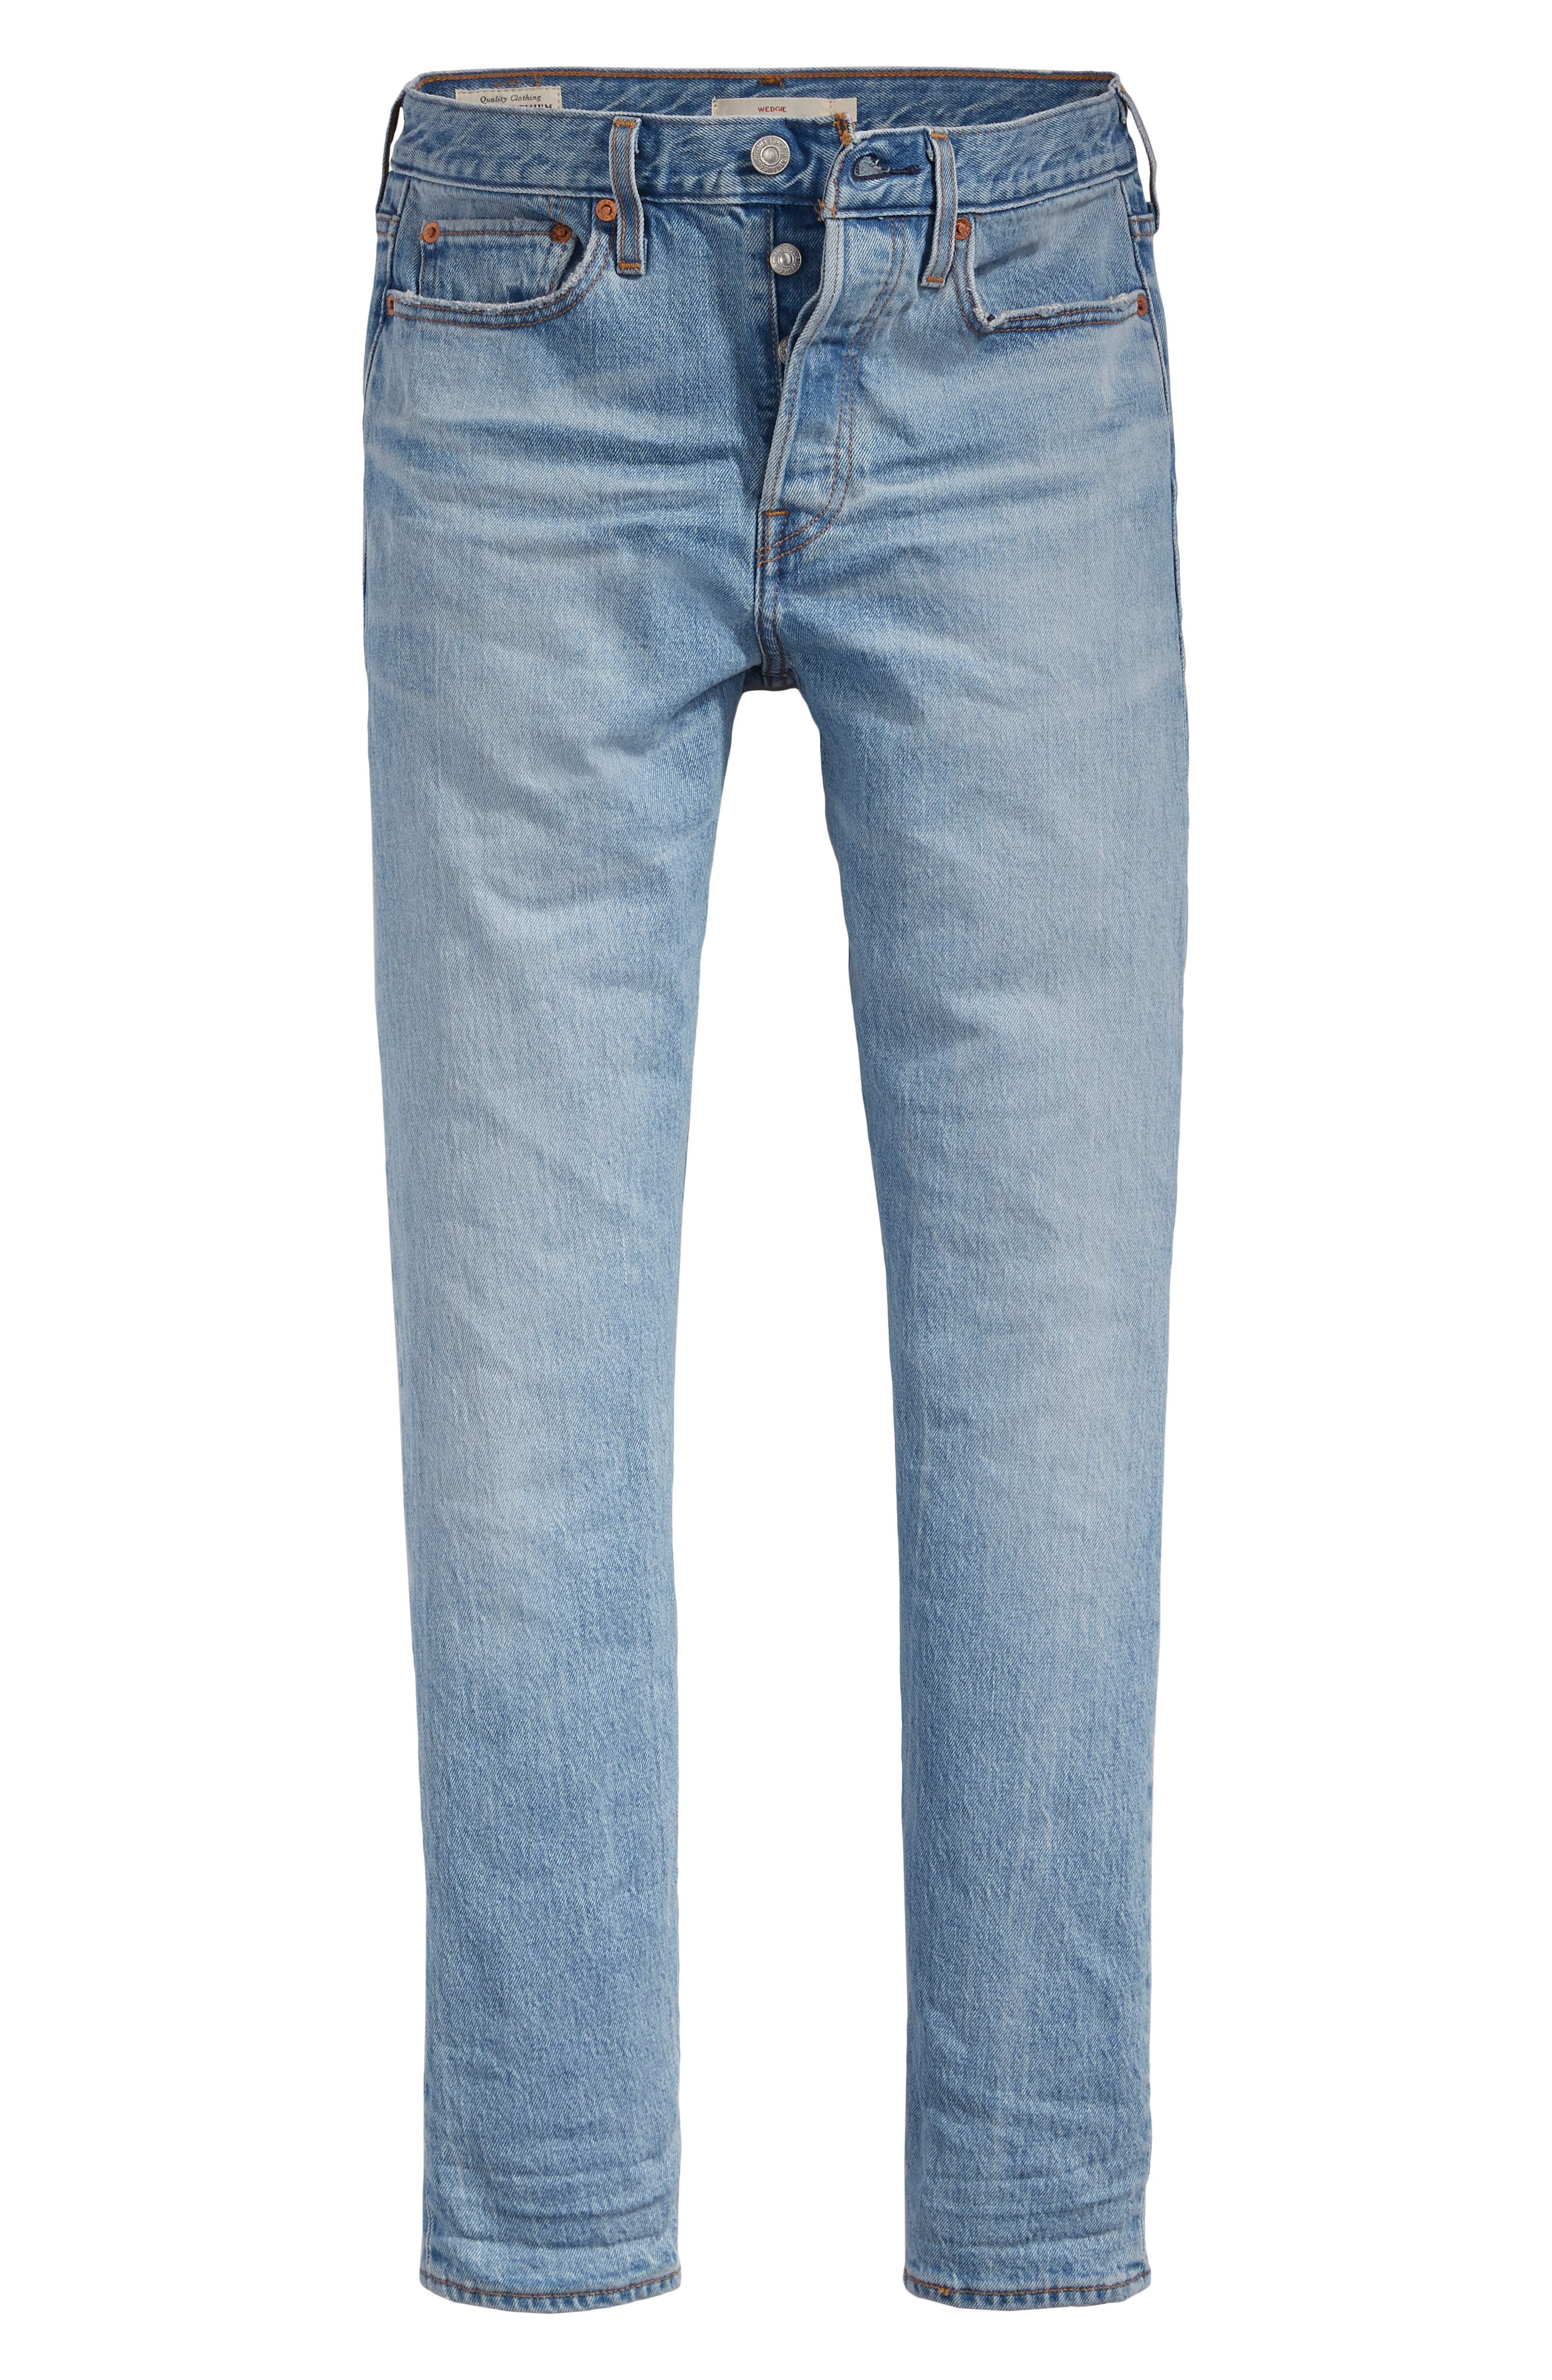 LEVI'S<SUP>®</SUP>,                             Wedgie Icon Fit High Waist Ankle Jeans,                             Alternate thumbnail 4, color,                             BRIGHT SIDE